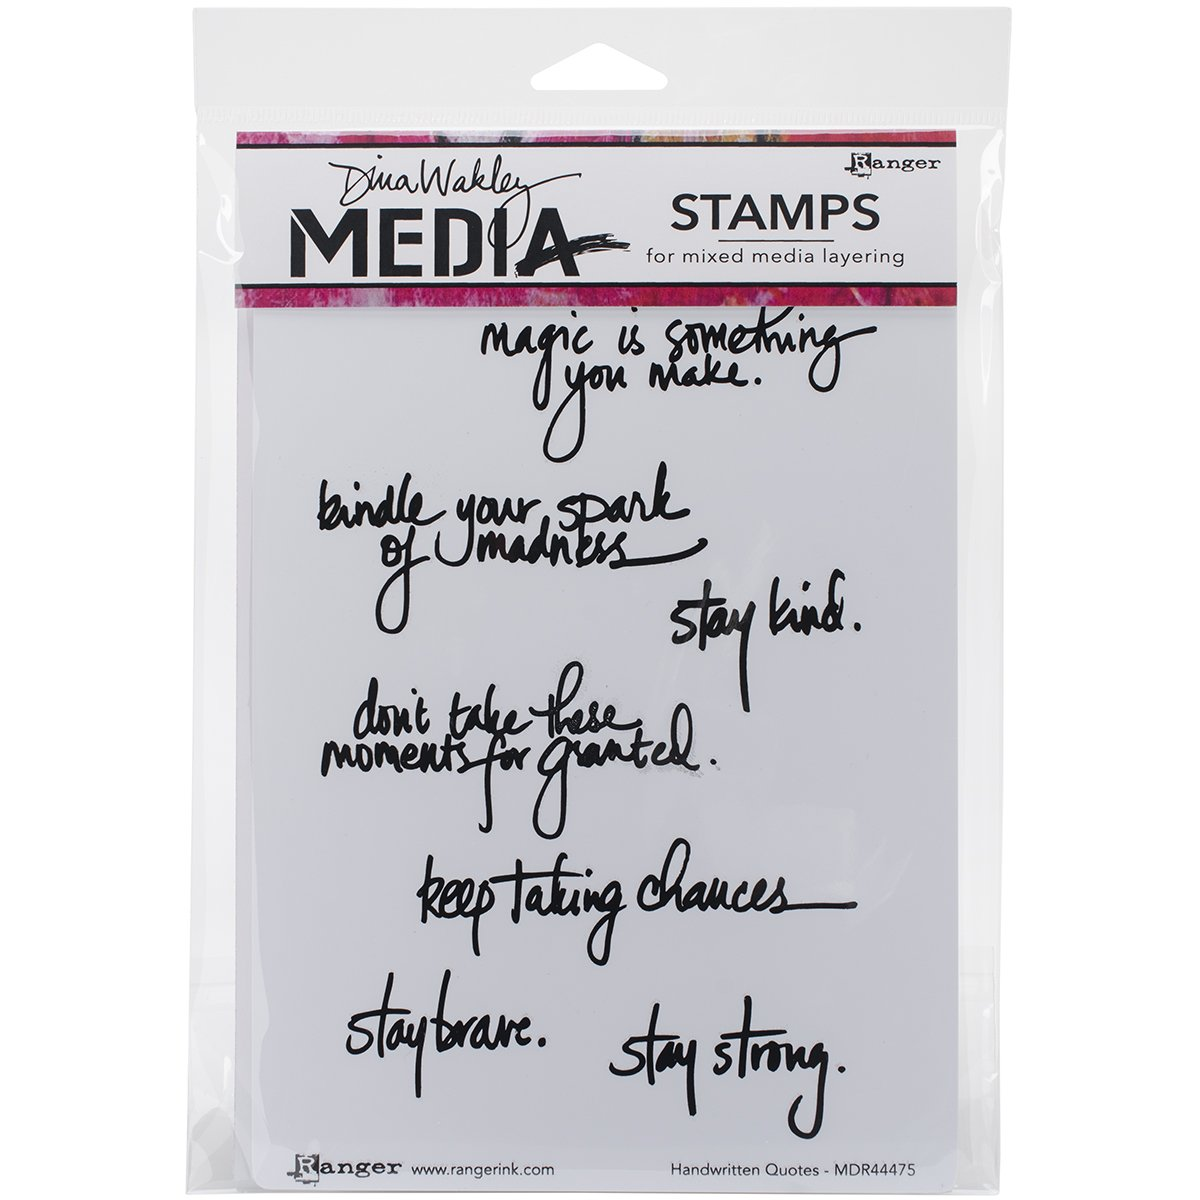 Ranger Dina Wakley Media Cling Stamps 6 by 9-Inch, Handwritten Quotes MDR-44475